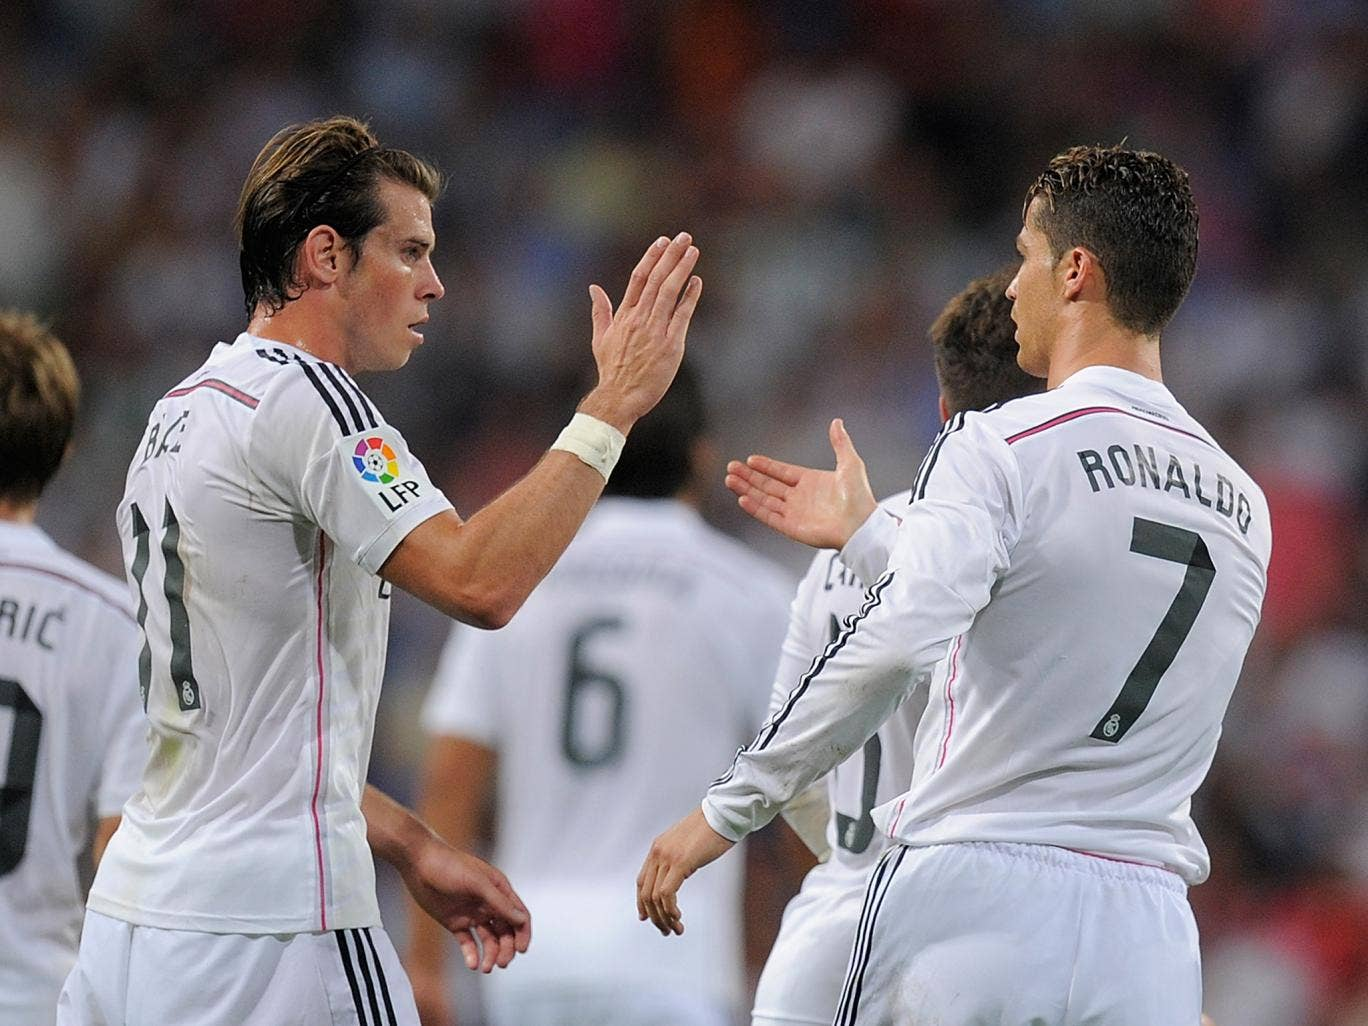 Cristiano Ronaldo of Real Madrid celebrates with Gareth Bale after scoring